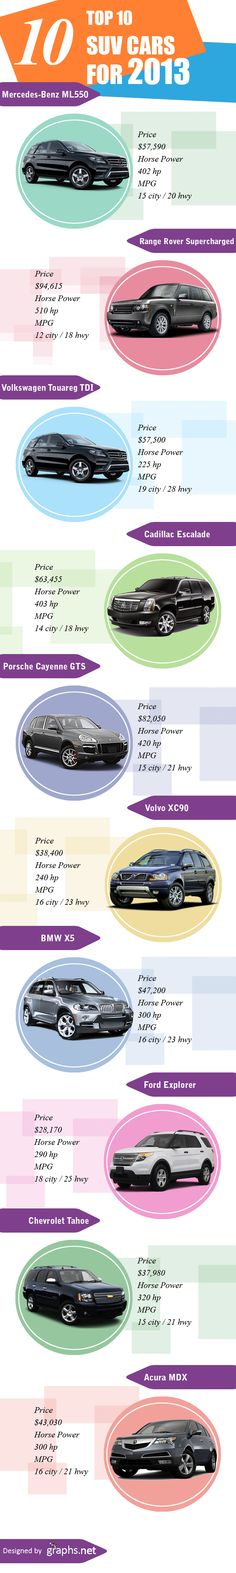 http://www.7seatersuvwiki.com/2013/03/2013-seven-seater-suv-buying-guide.html Top 10 SUV Cars For 2013 #Top #10 #SUV #Cars #2013 #Infographics